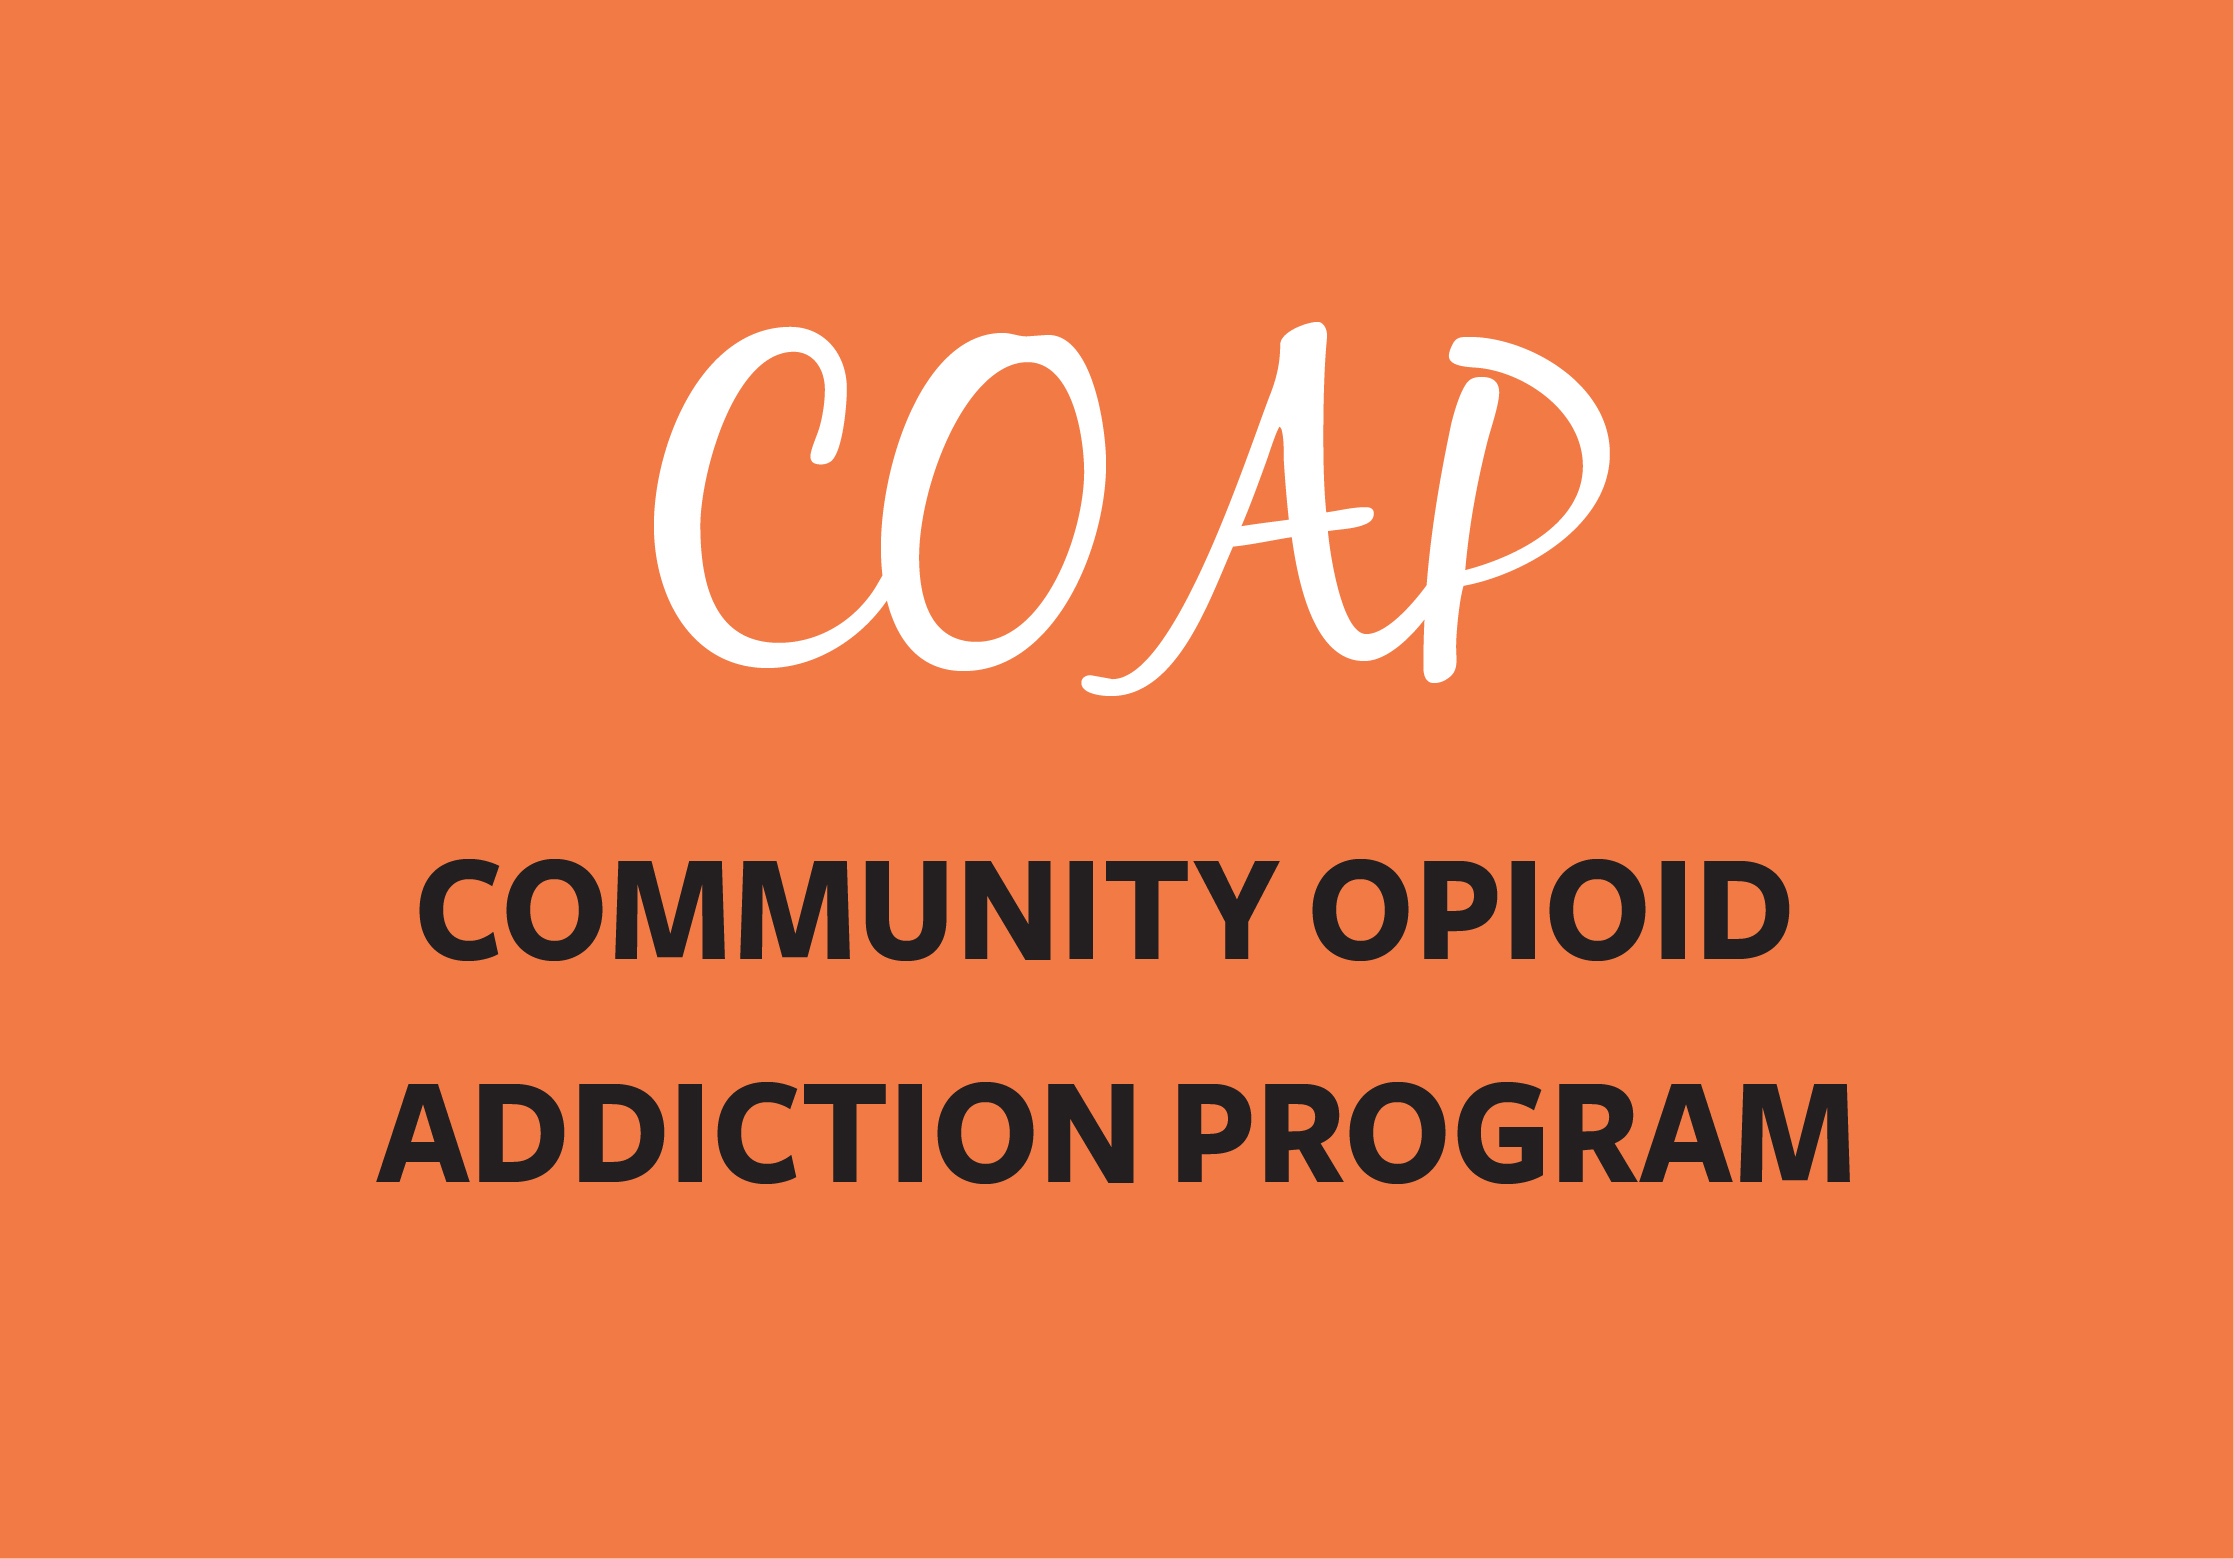 Link to Community Opioid Addiction Program page